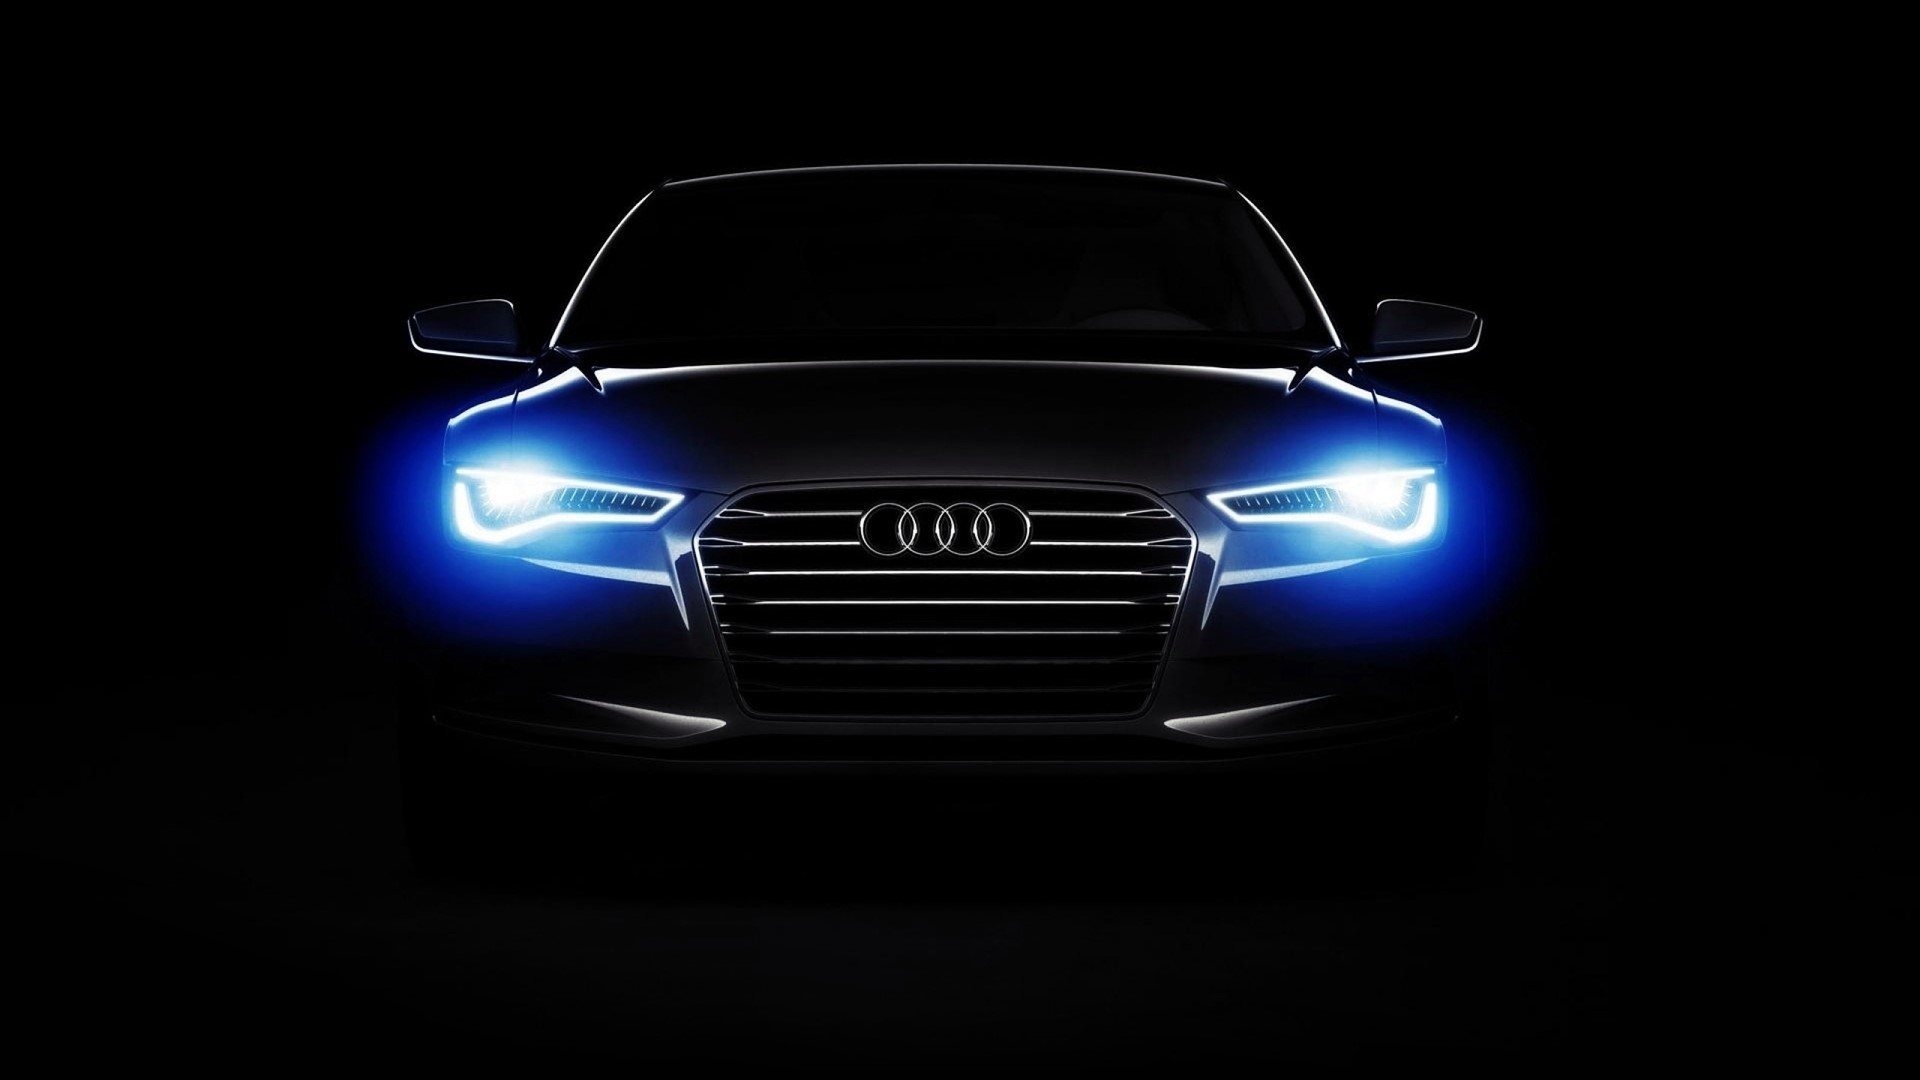 1920x1080 - Audi A6 Wallpapers 8